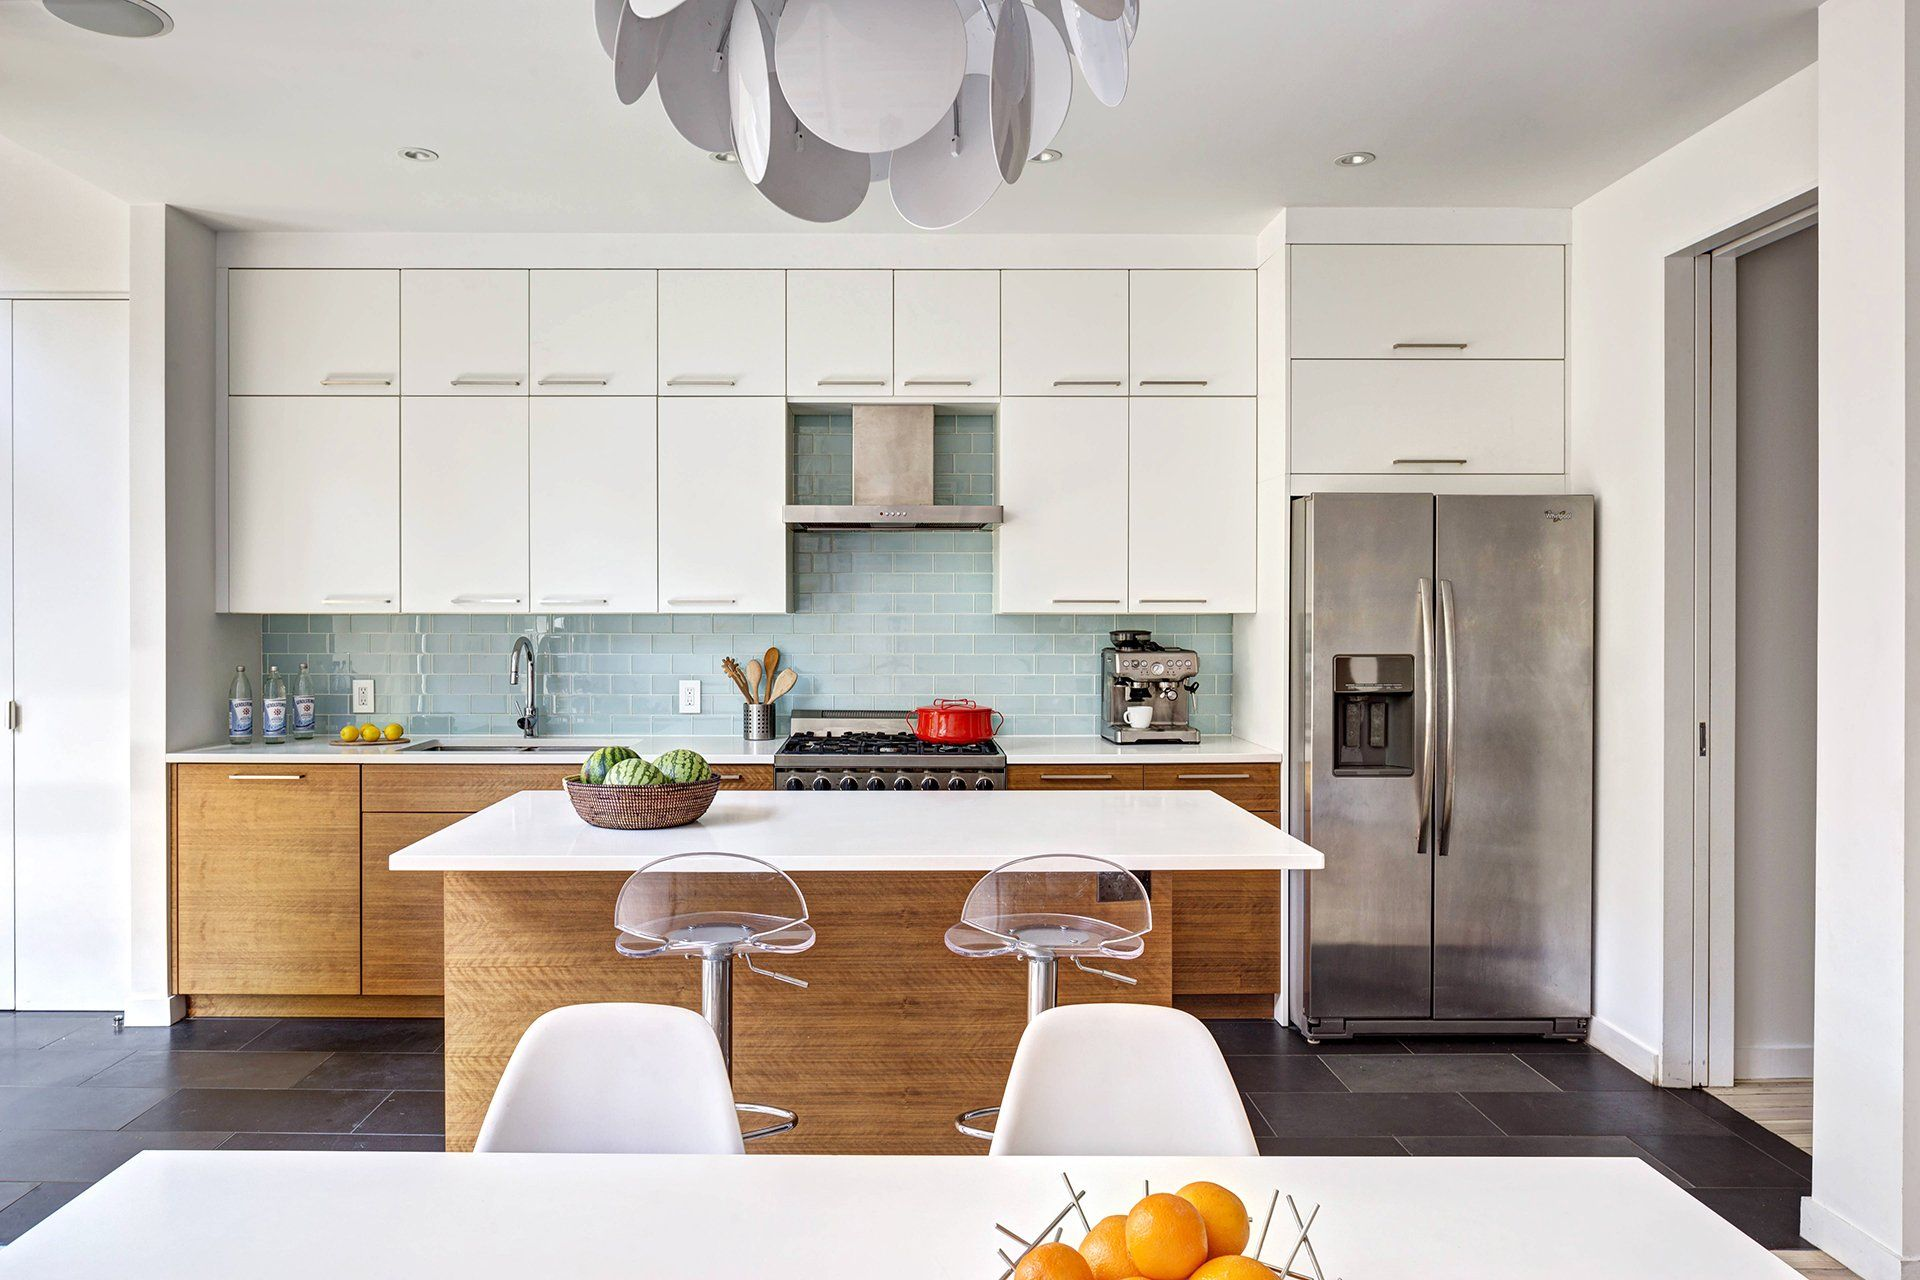 Two-toned cabinets by Semihandmade for IKEA Kitchens #ikea